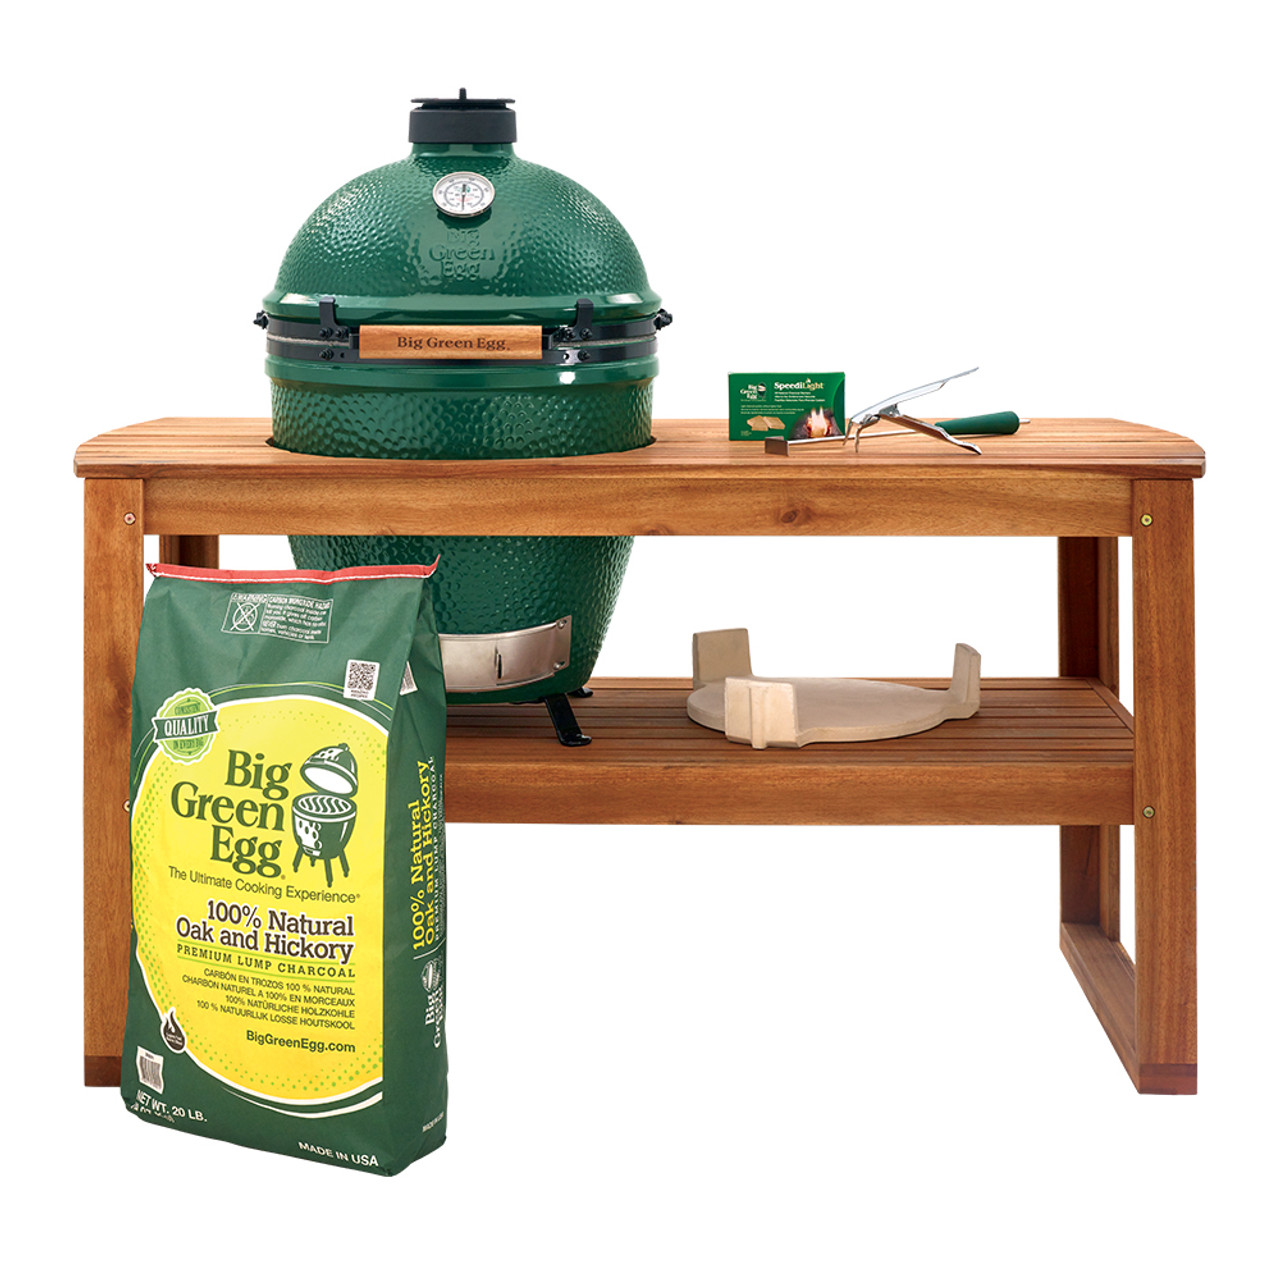 Large Big Green Egg housed in an acacia wood table and table nest, along with common tools and EGGsessories for cooking and maintenance